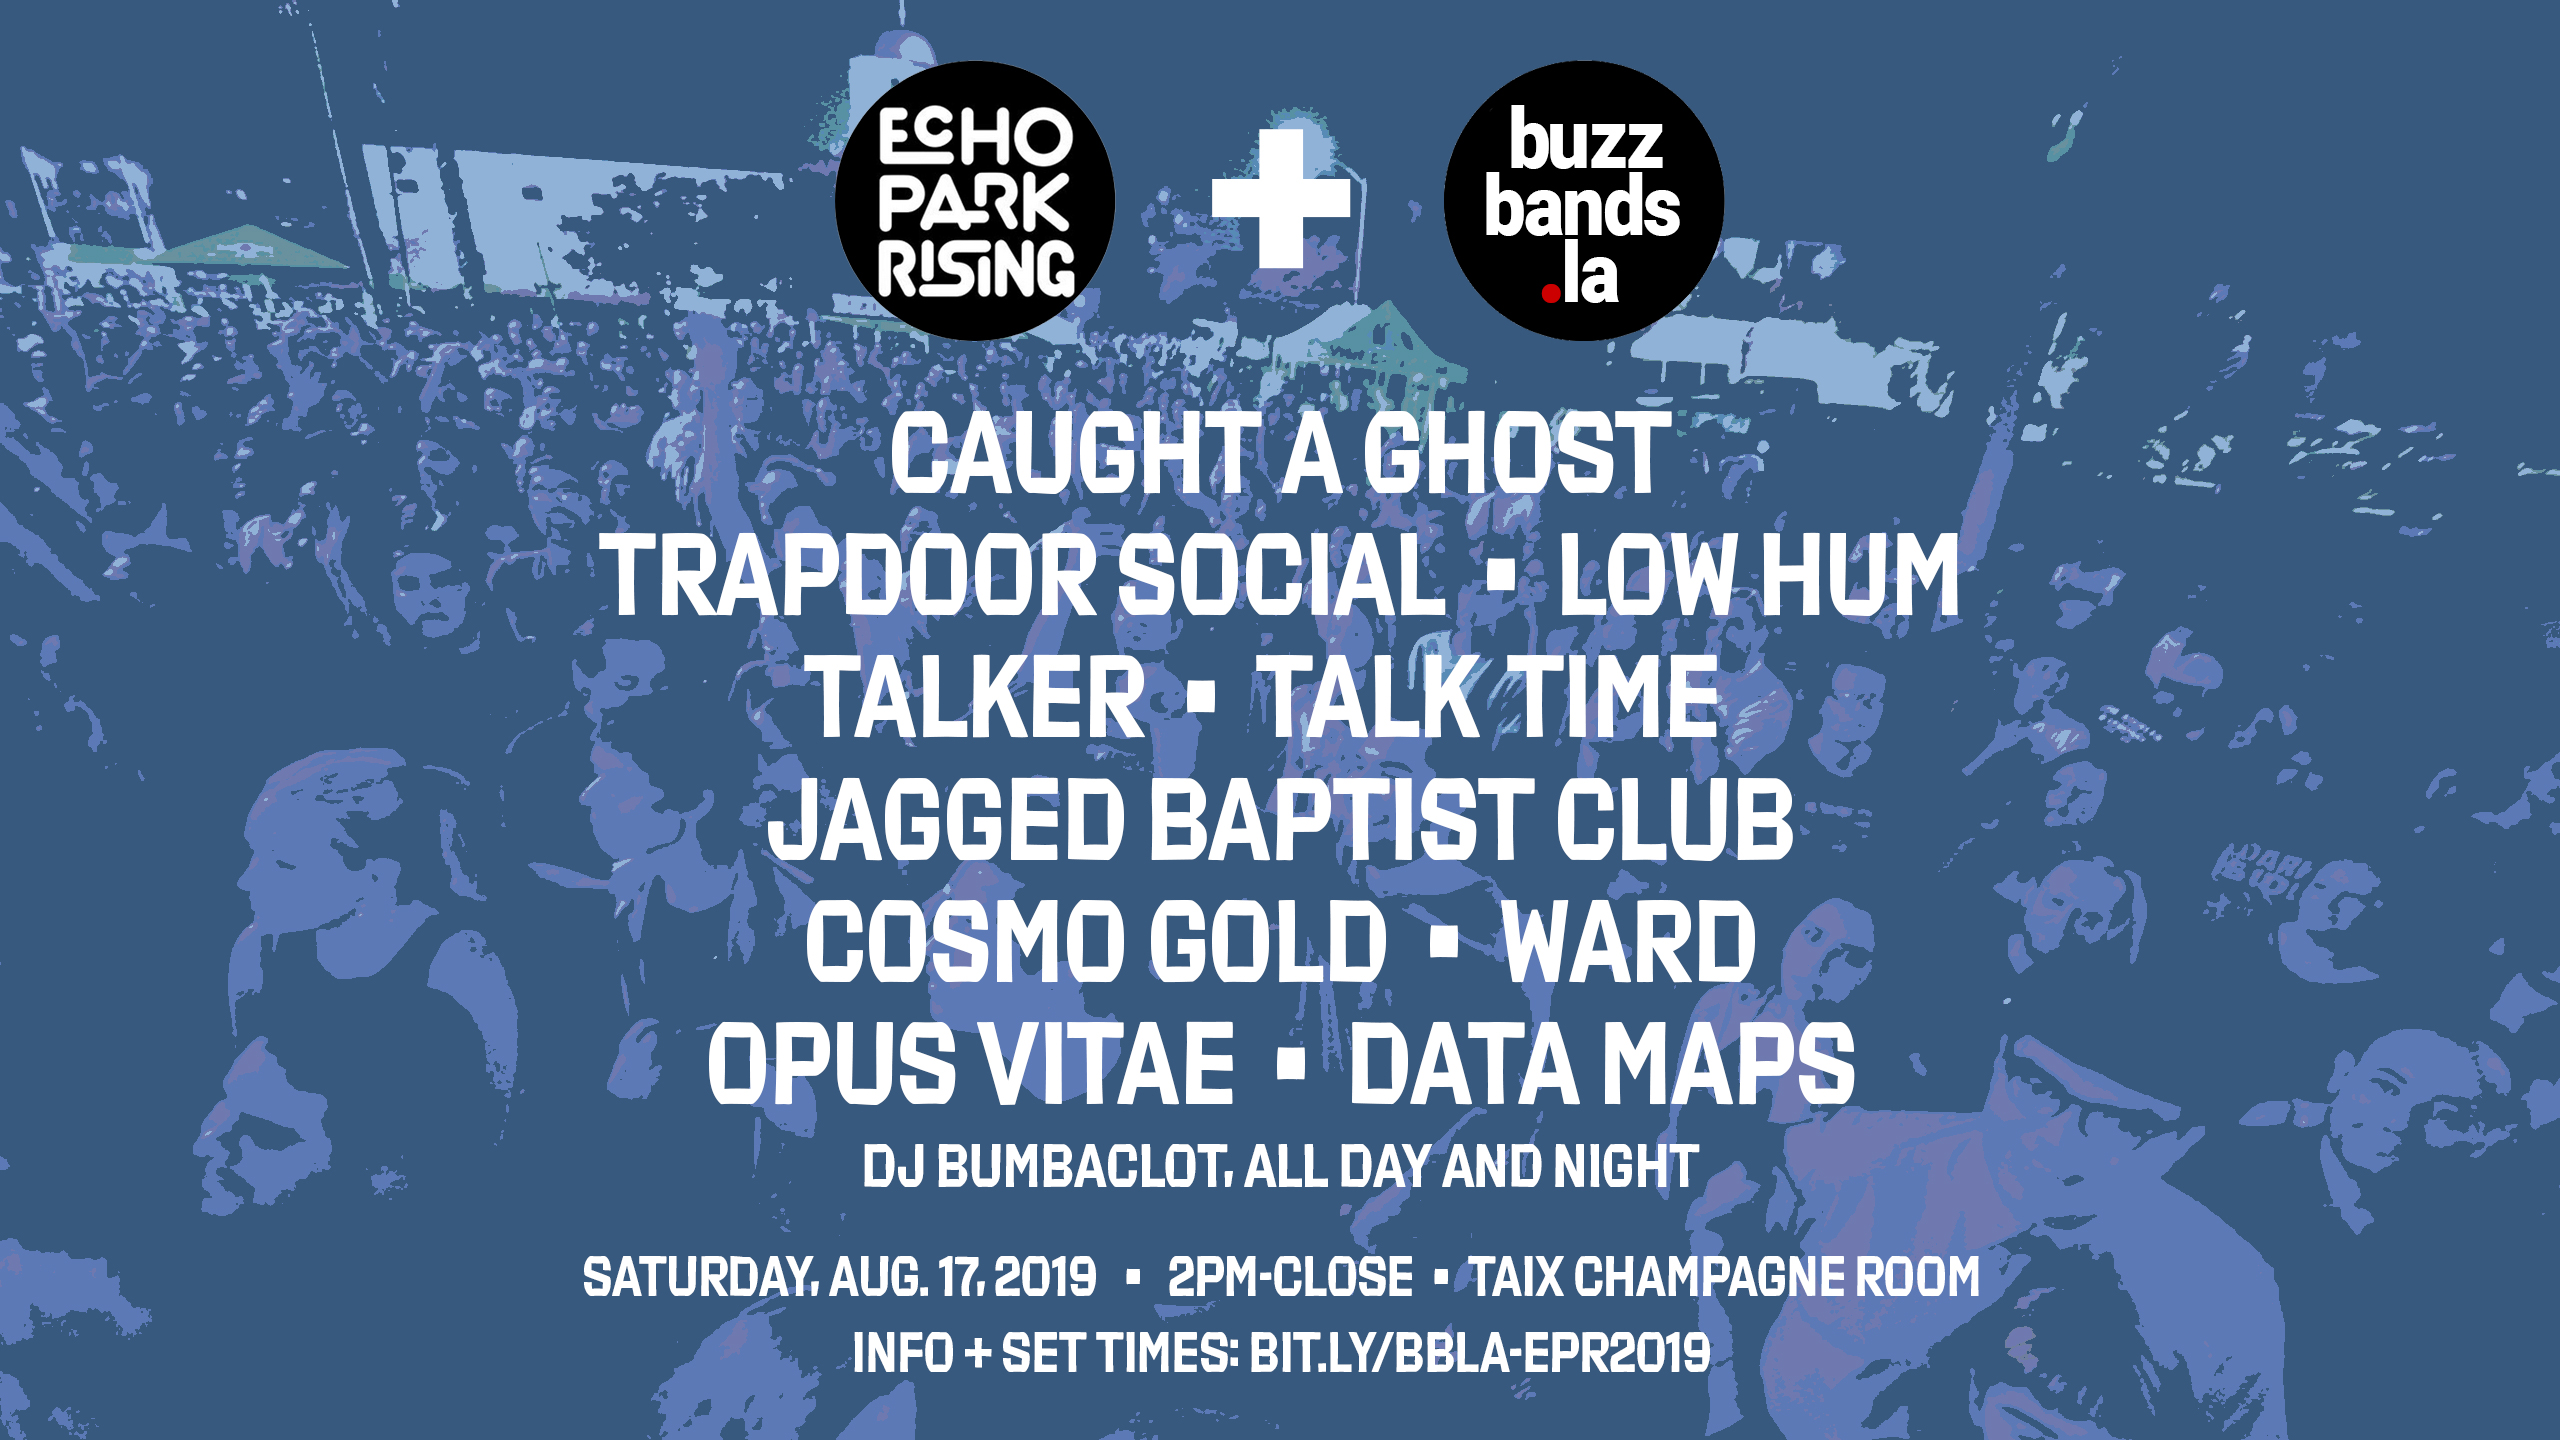 Echo Park Rising 2019: Caught a Ghost, Trapdoor Social, Low